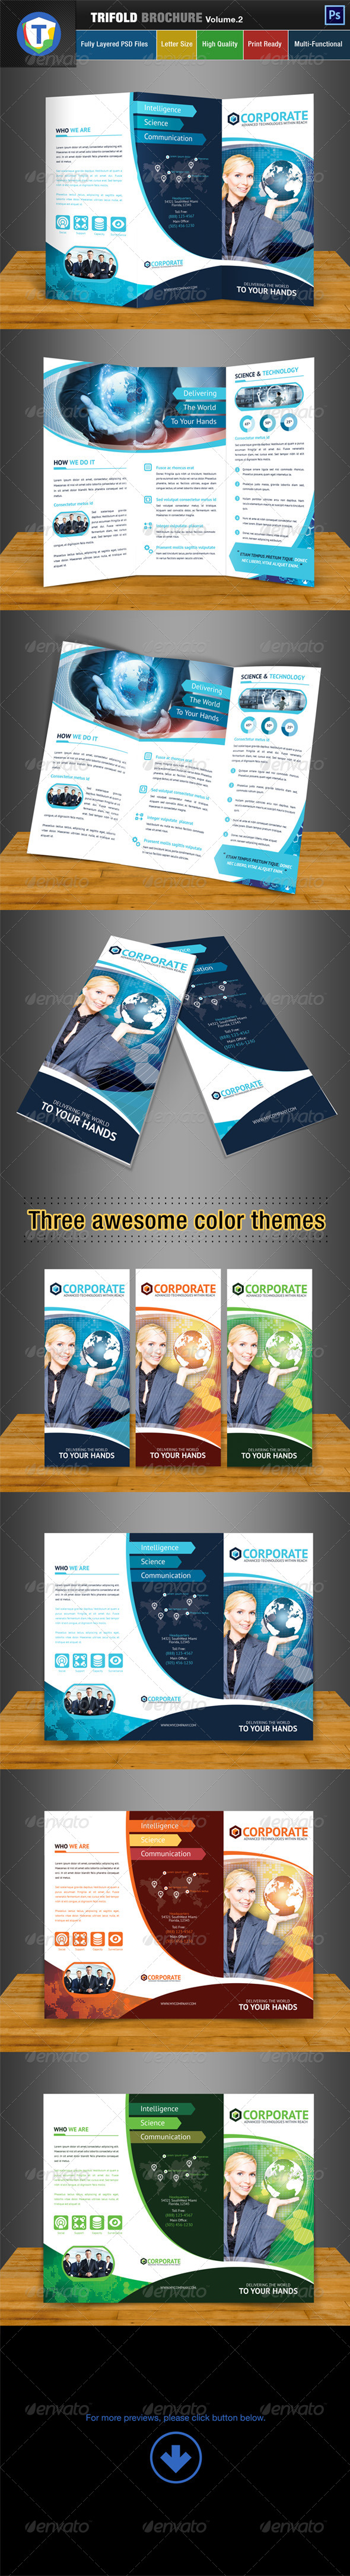 Trifold Brochure - Volume 2 - Brochures Print Templates